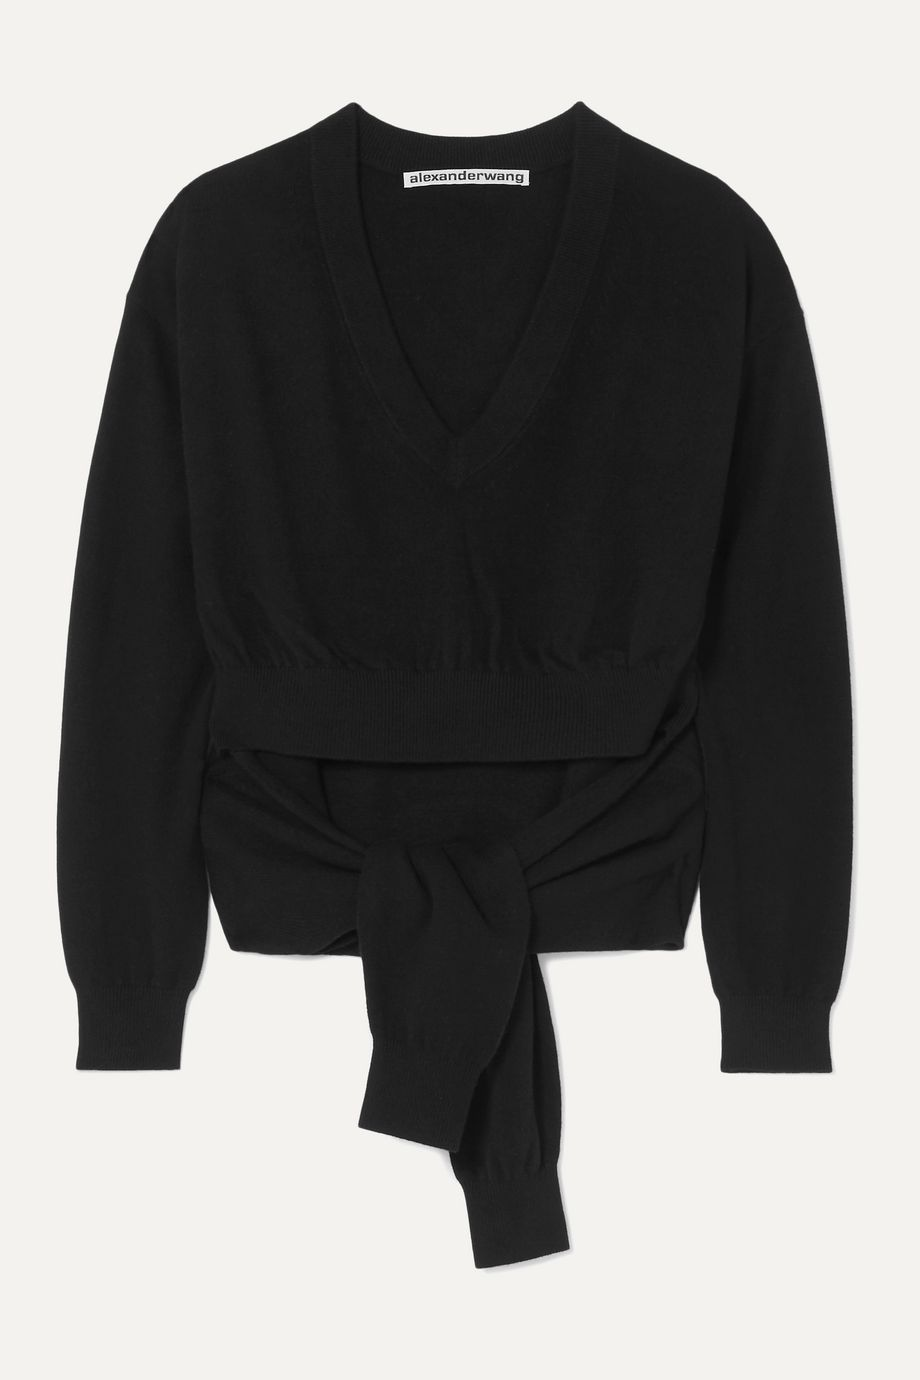 Alexander Wang Tie-detailed cutout wool-blend sweater